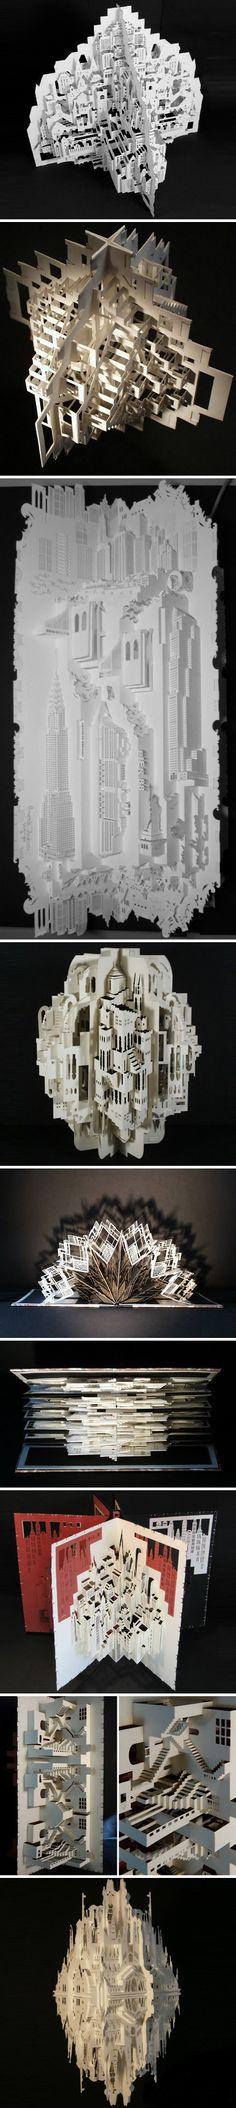 amazing paper cut building modles